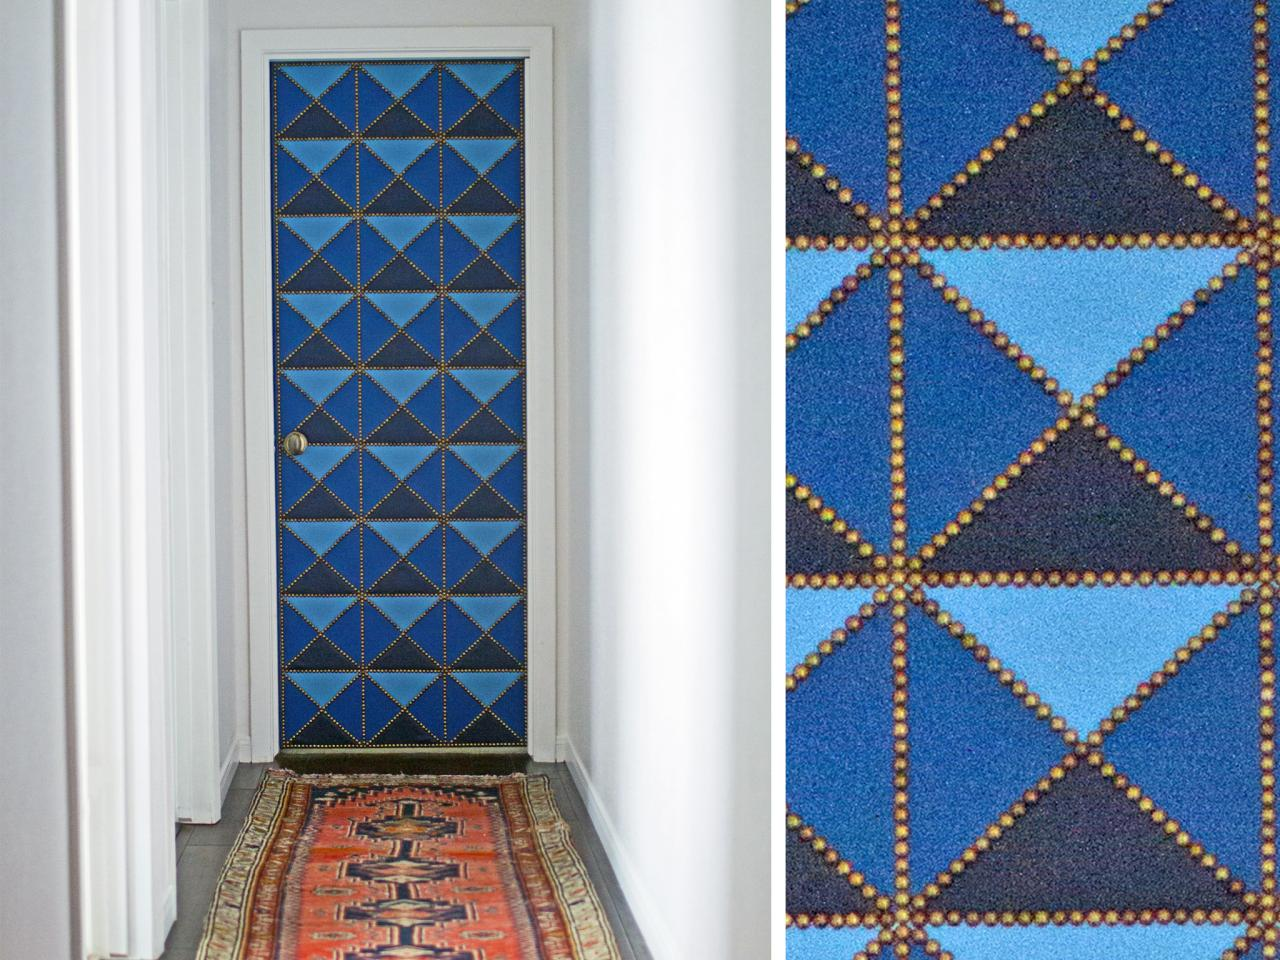 How to Make a Geometric Upholstered Door